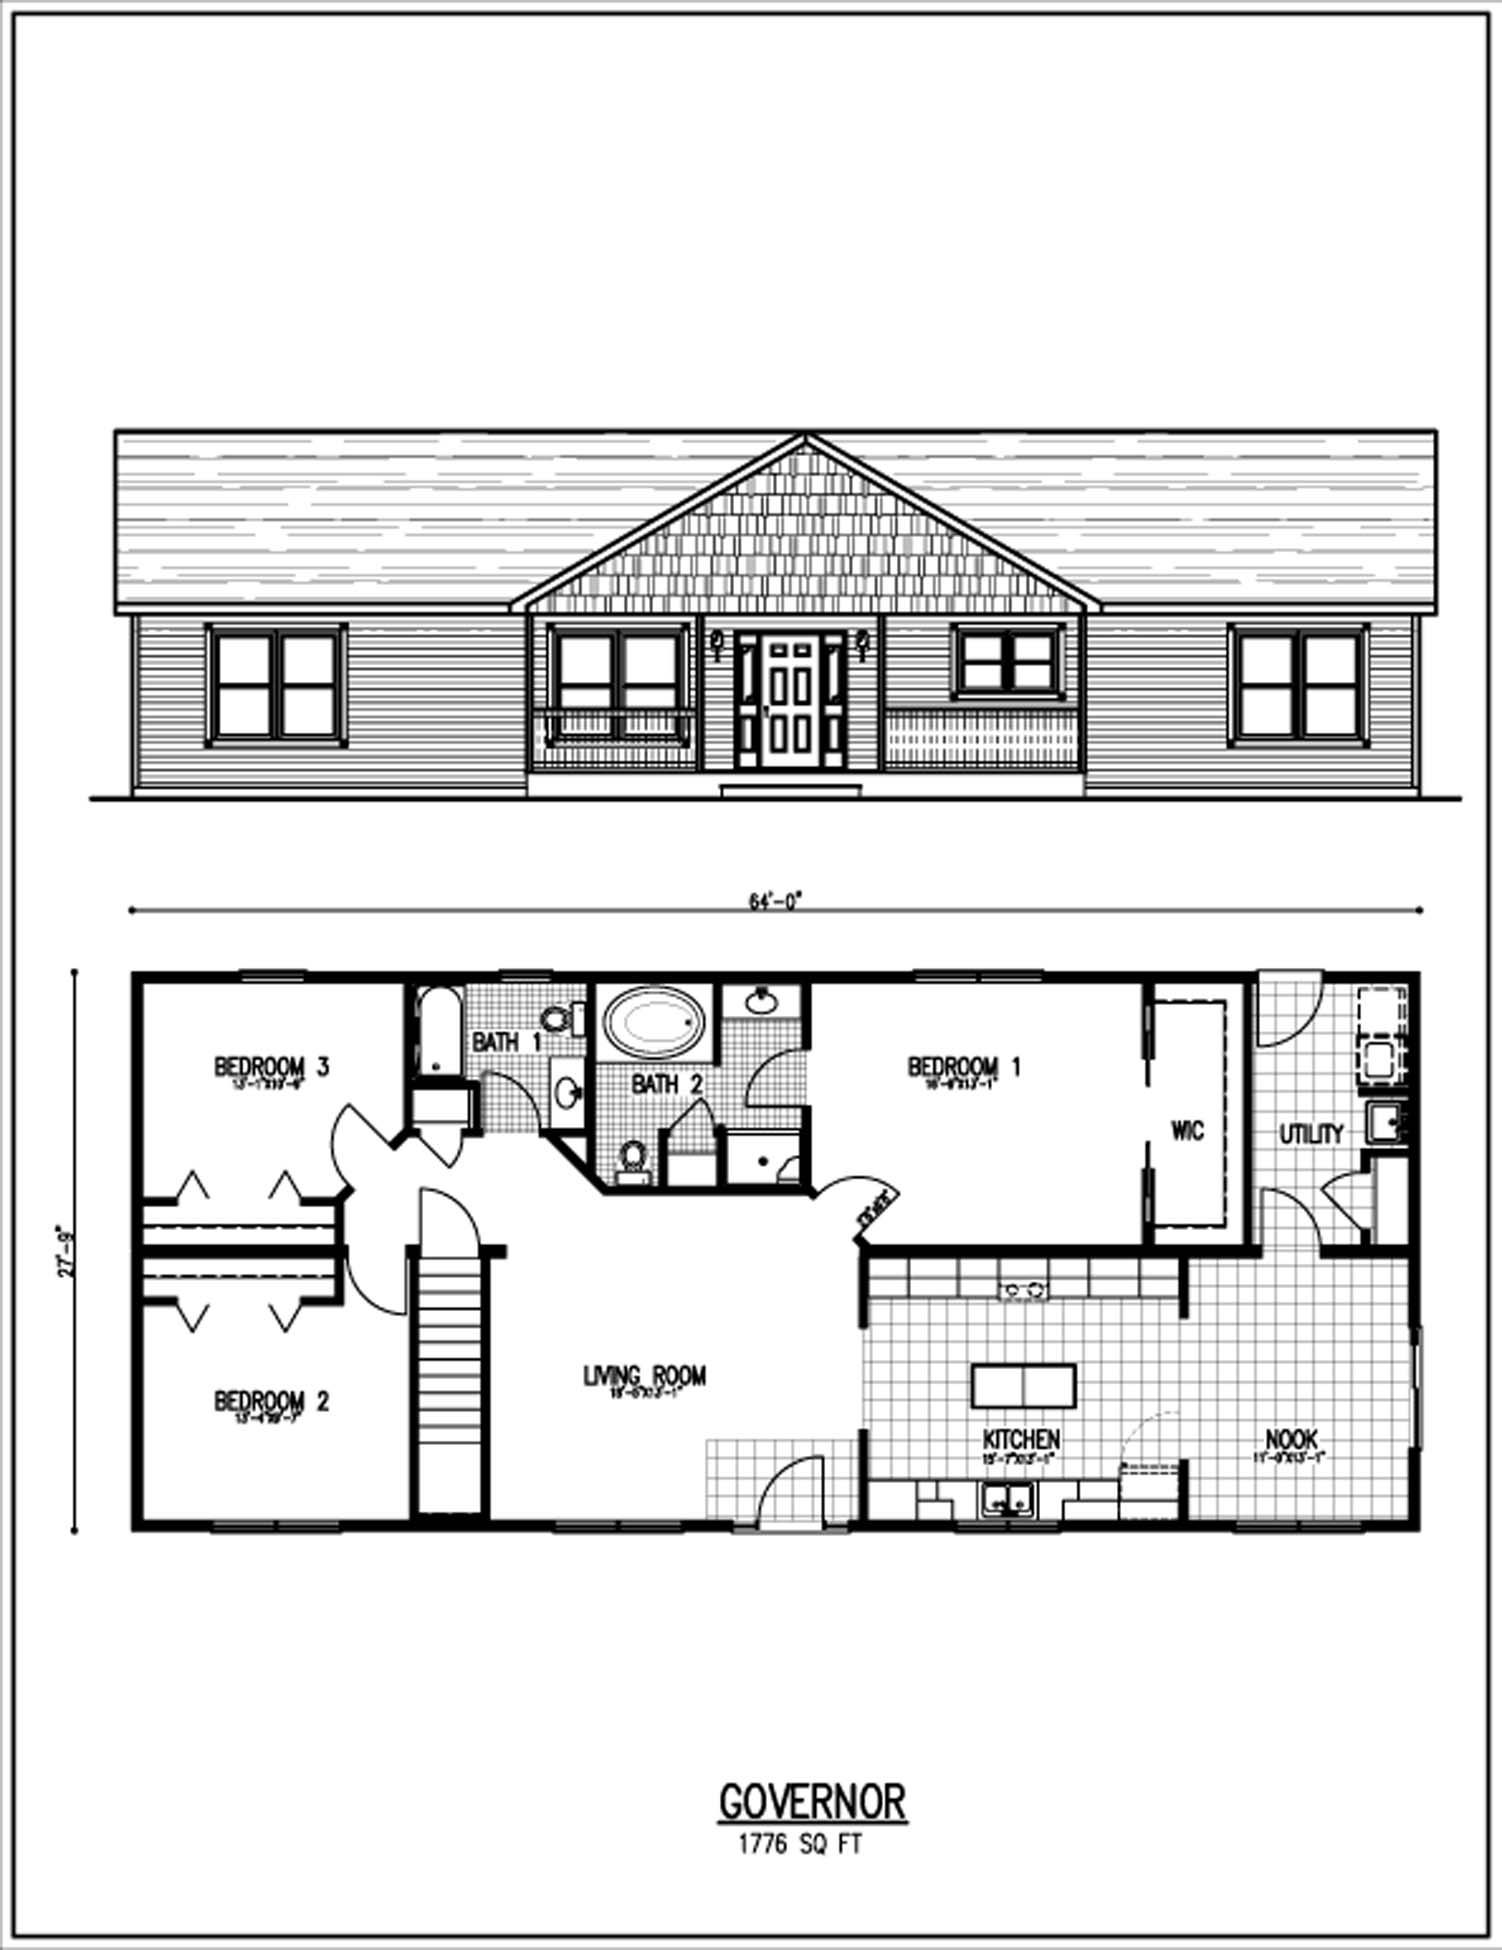 Floor plans by shawam082498 on pinterest floor plans for Ranch floor plans